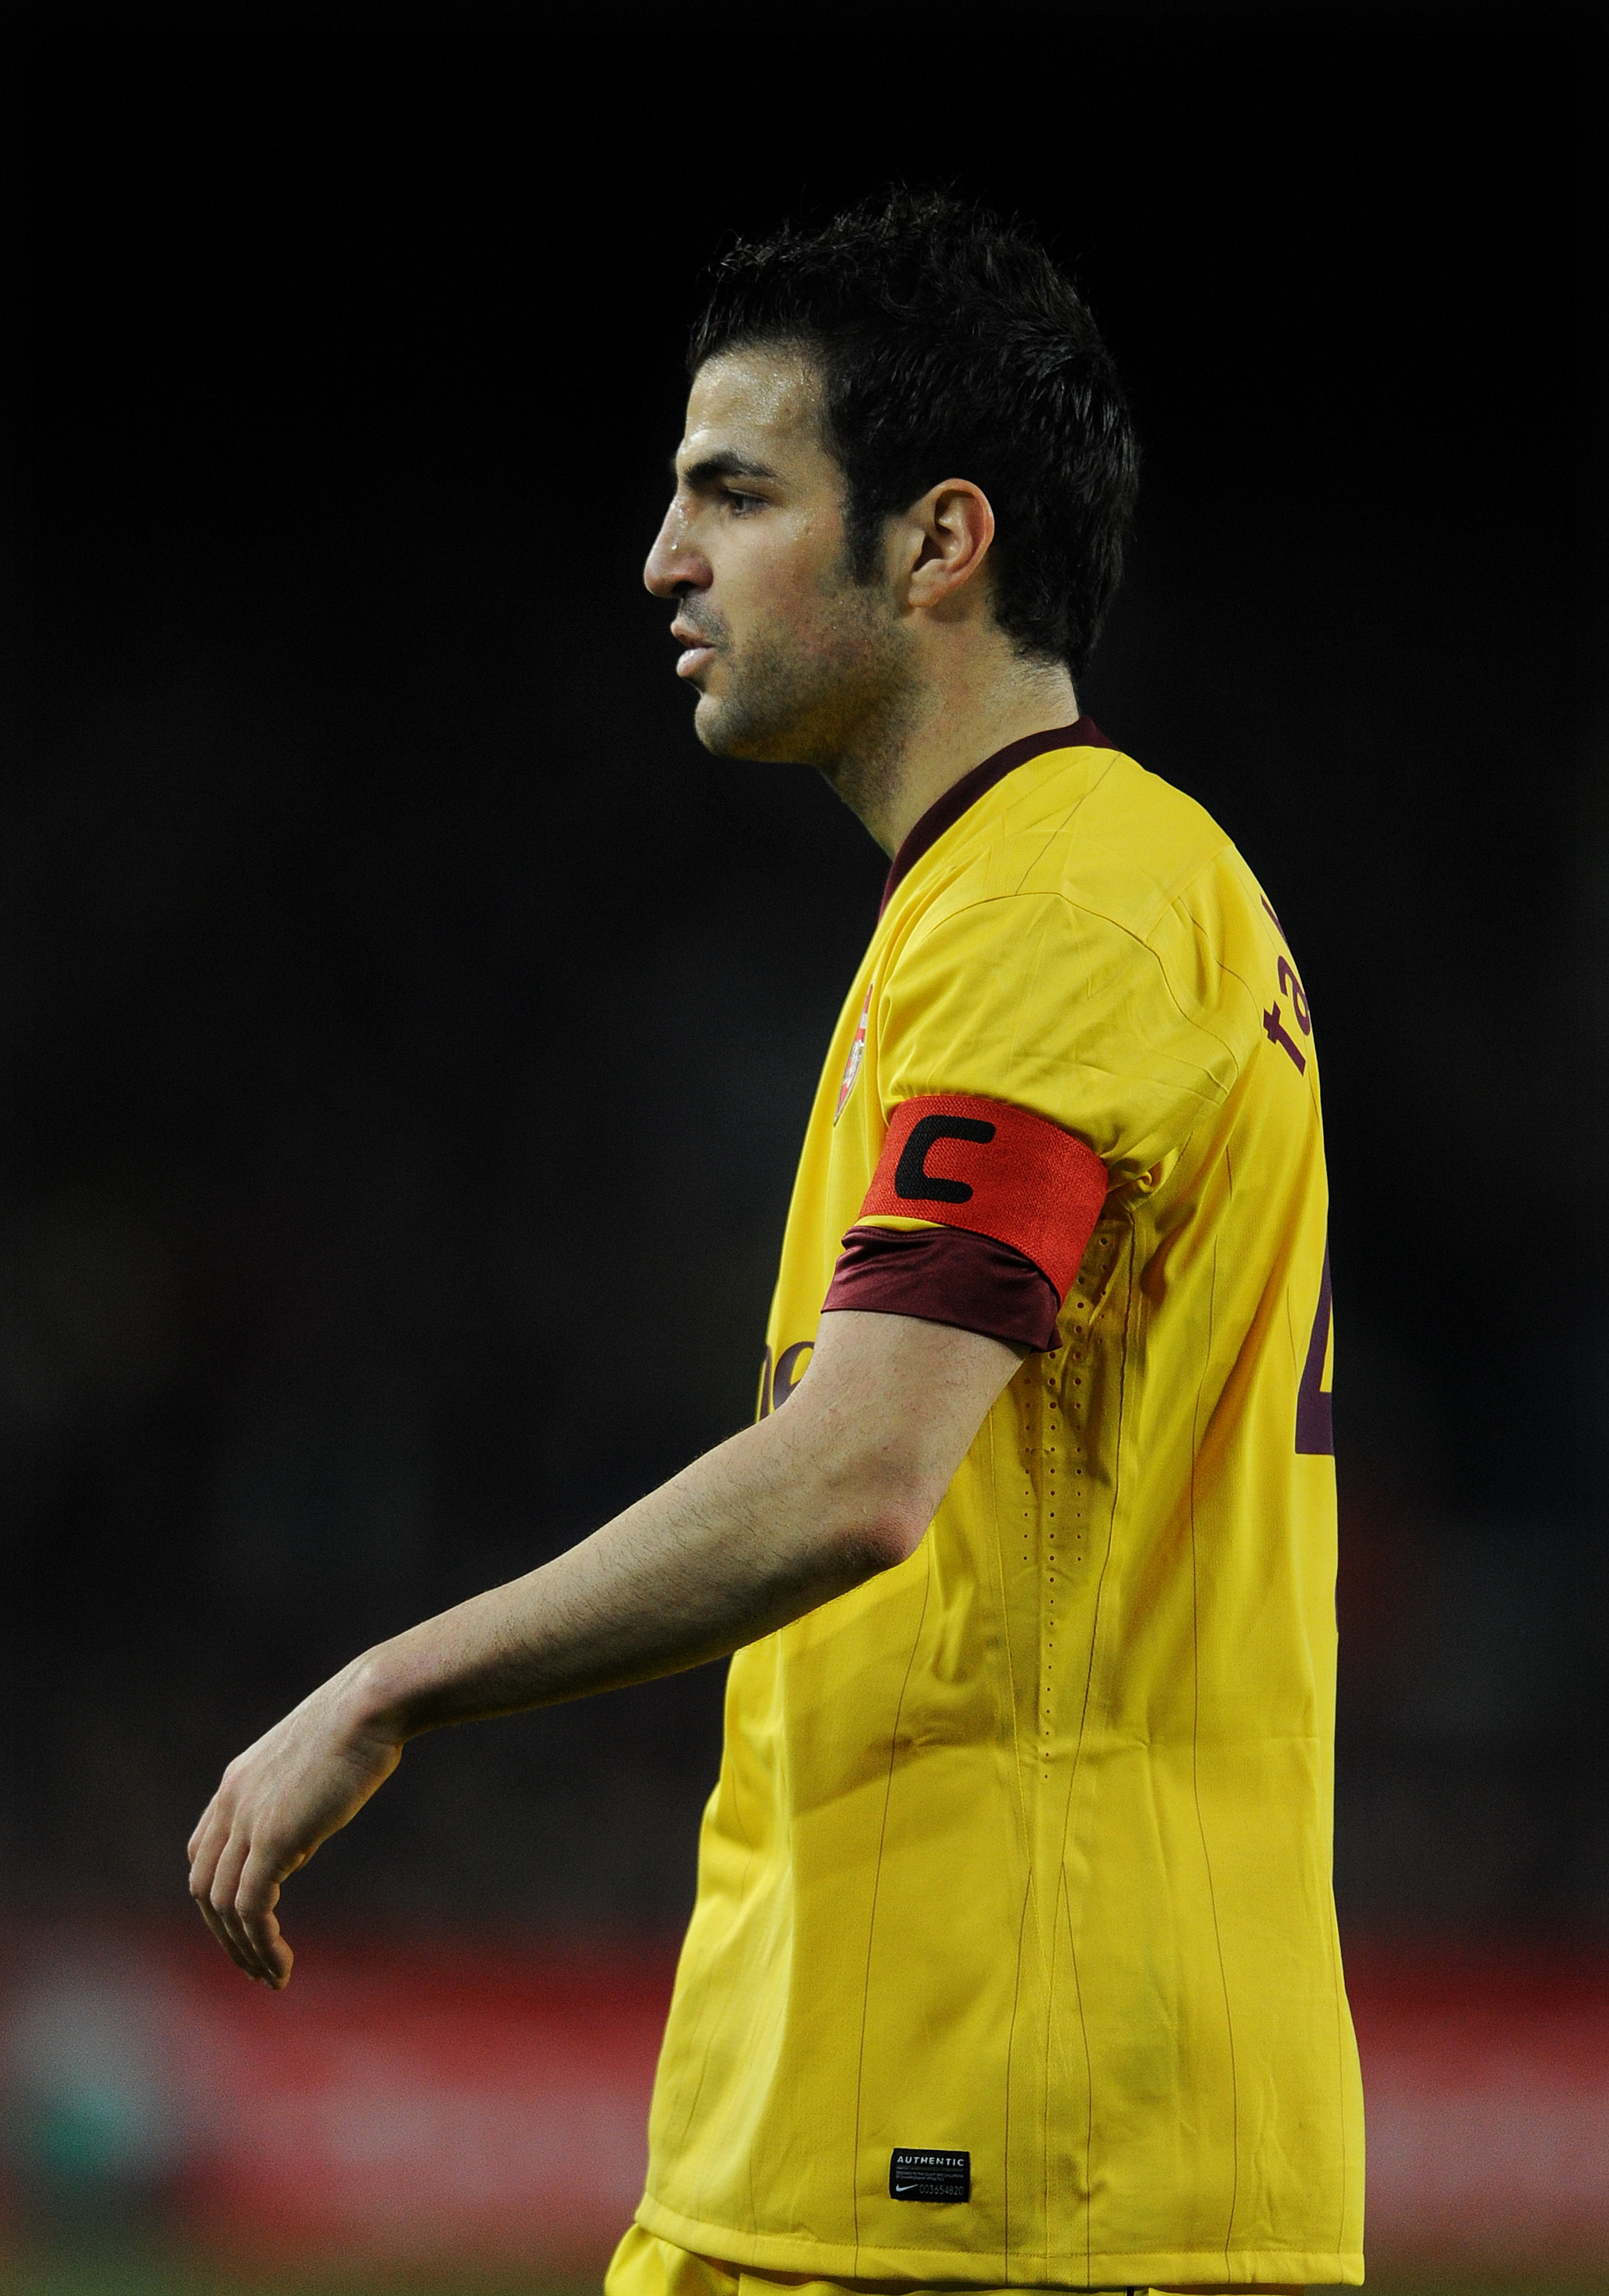 BARCELONA, SPAIN - MARCH 08:  Cesc Fabregas of Arsenal looks on during the UEFA Champions League round of 16 second leg match between Barcelona and Arsenal on March 8, 2011 in Barcelona, Spain.  (Photo by Jasper Juinen/Getty Images)